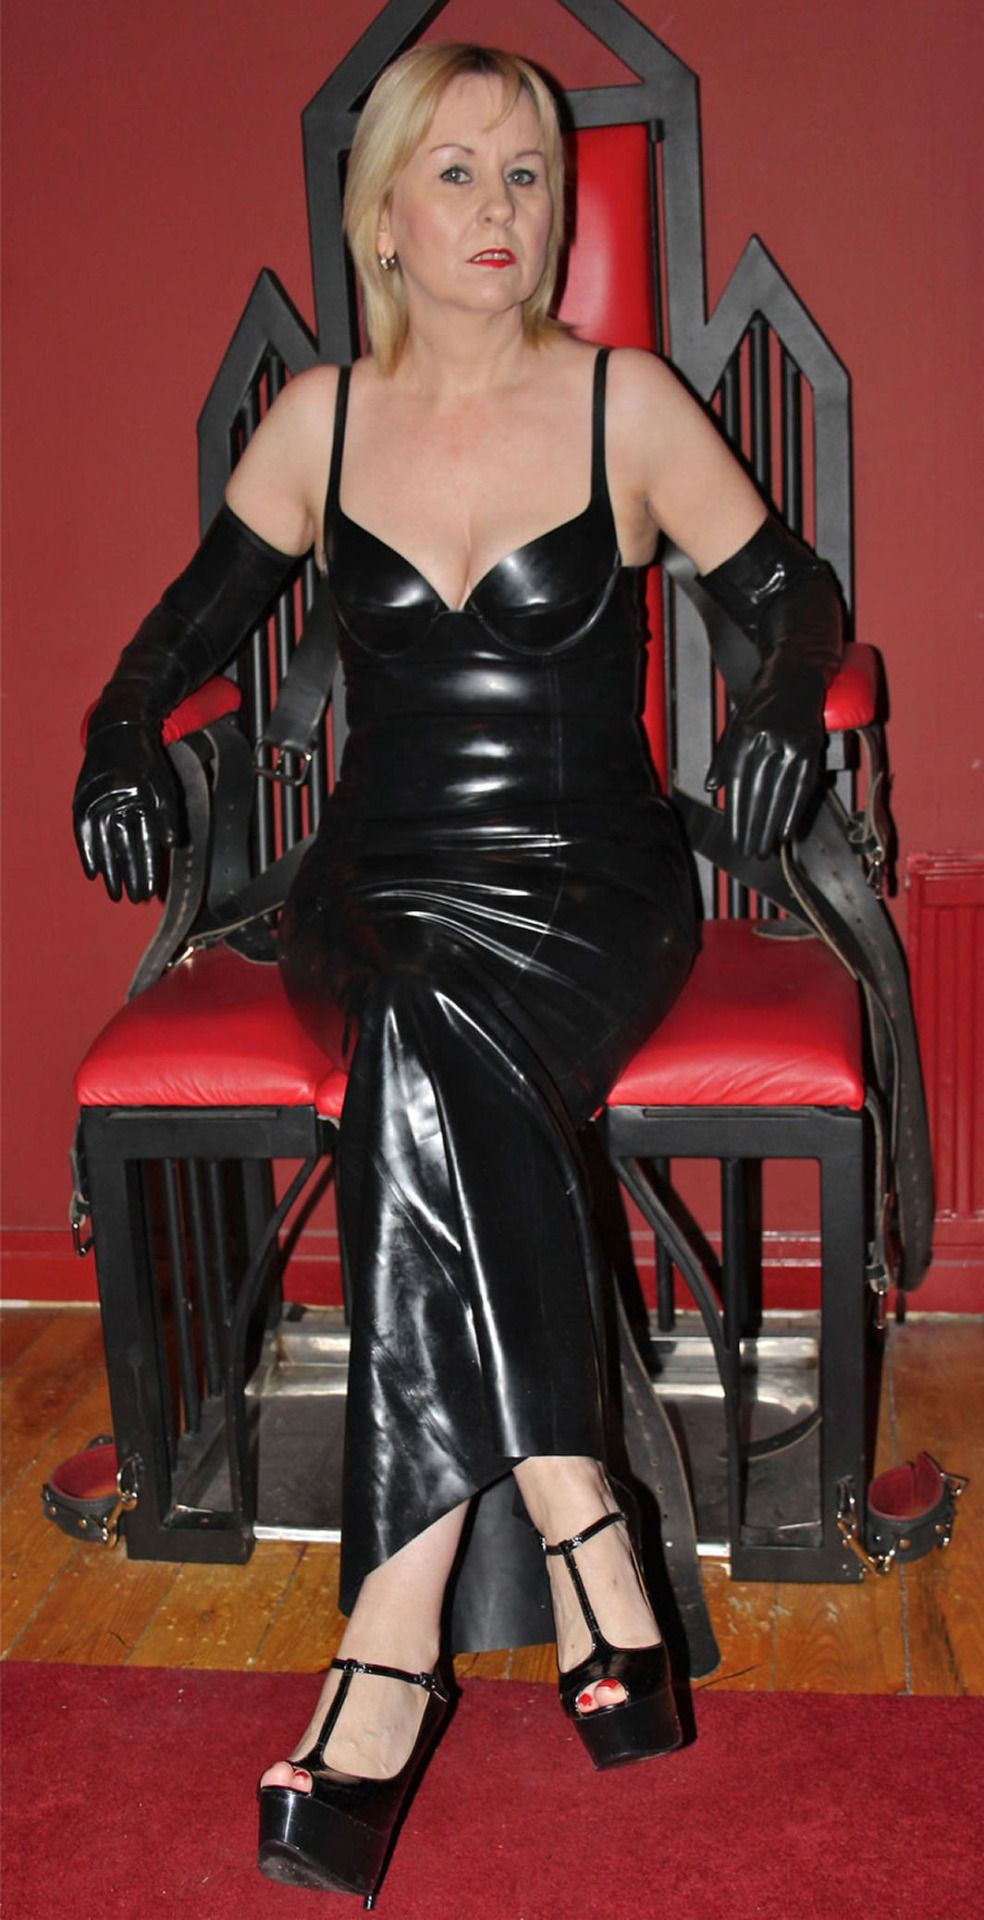 Dominatrix female mature